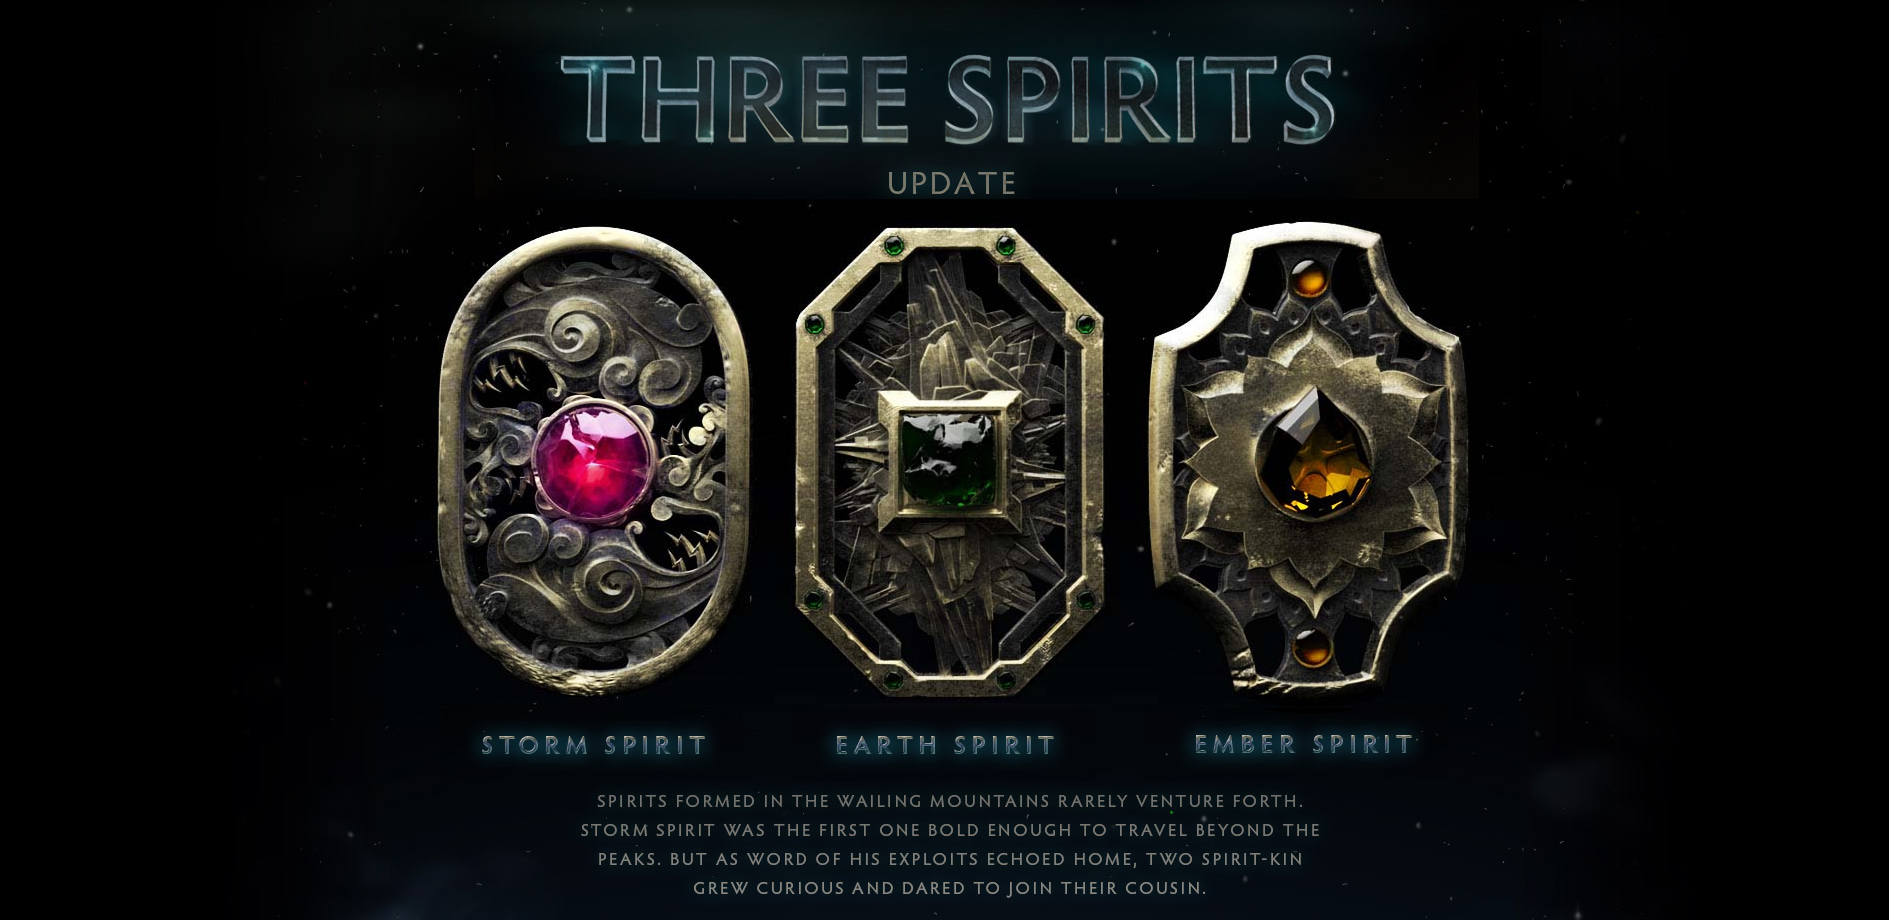 the three spirits update